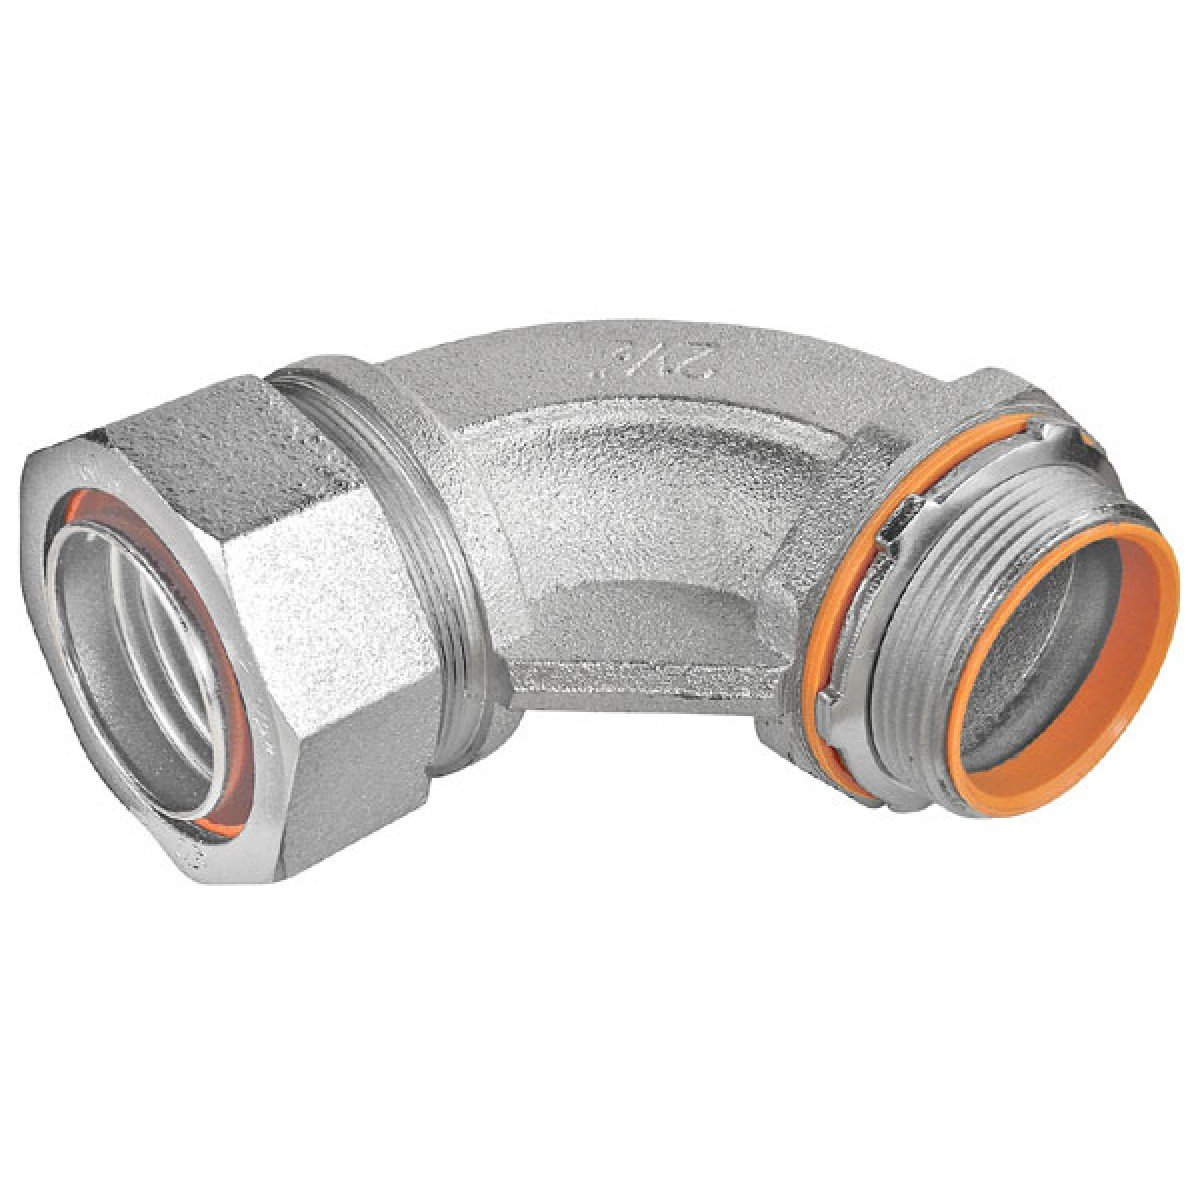 2 Pcs, 2 In. Malleable Iron Liquid Tight 90 Degree Connector w/Insulated Throat for Excellent Corrosion Protection In Damp Locations